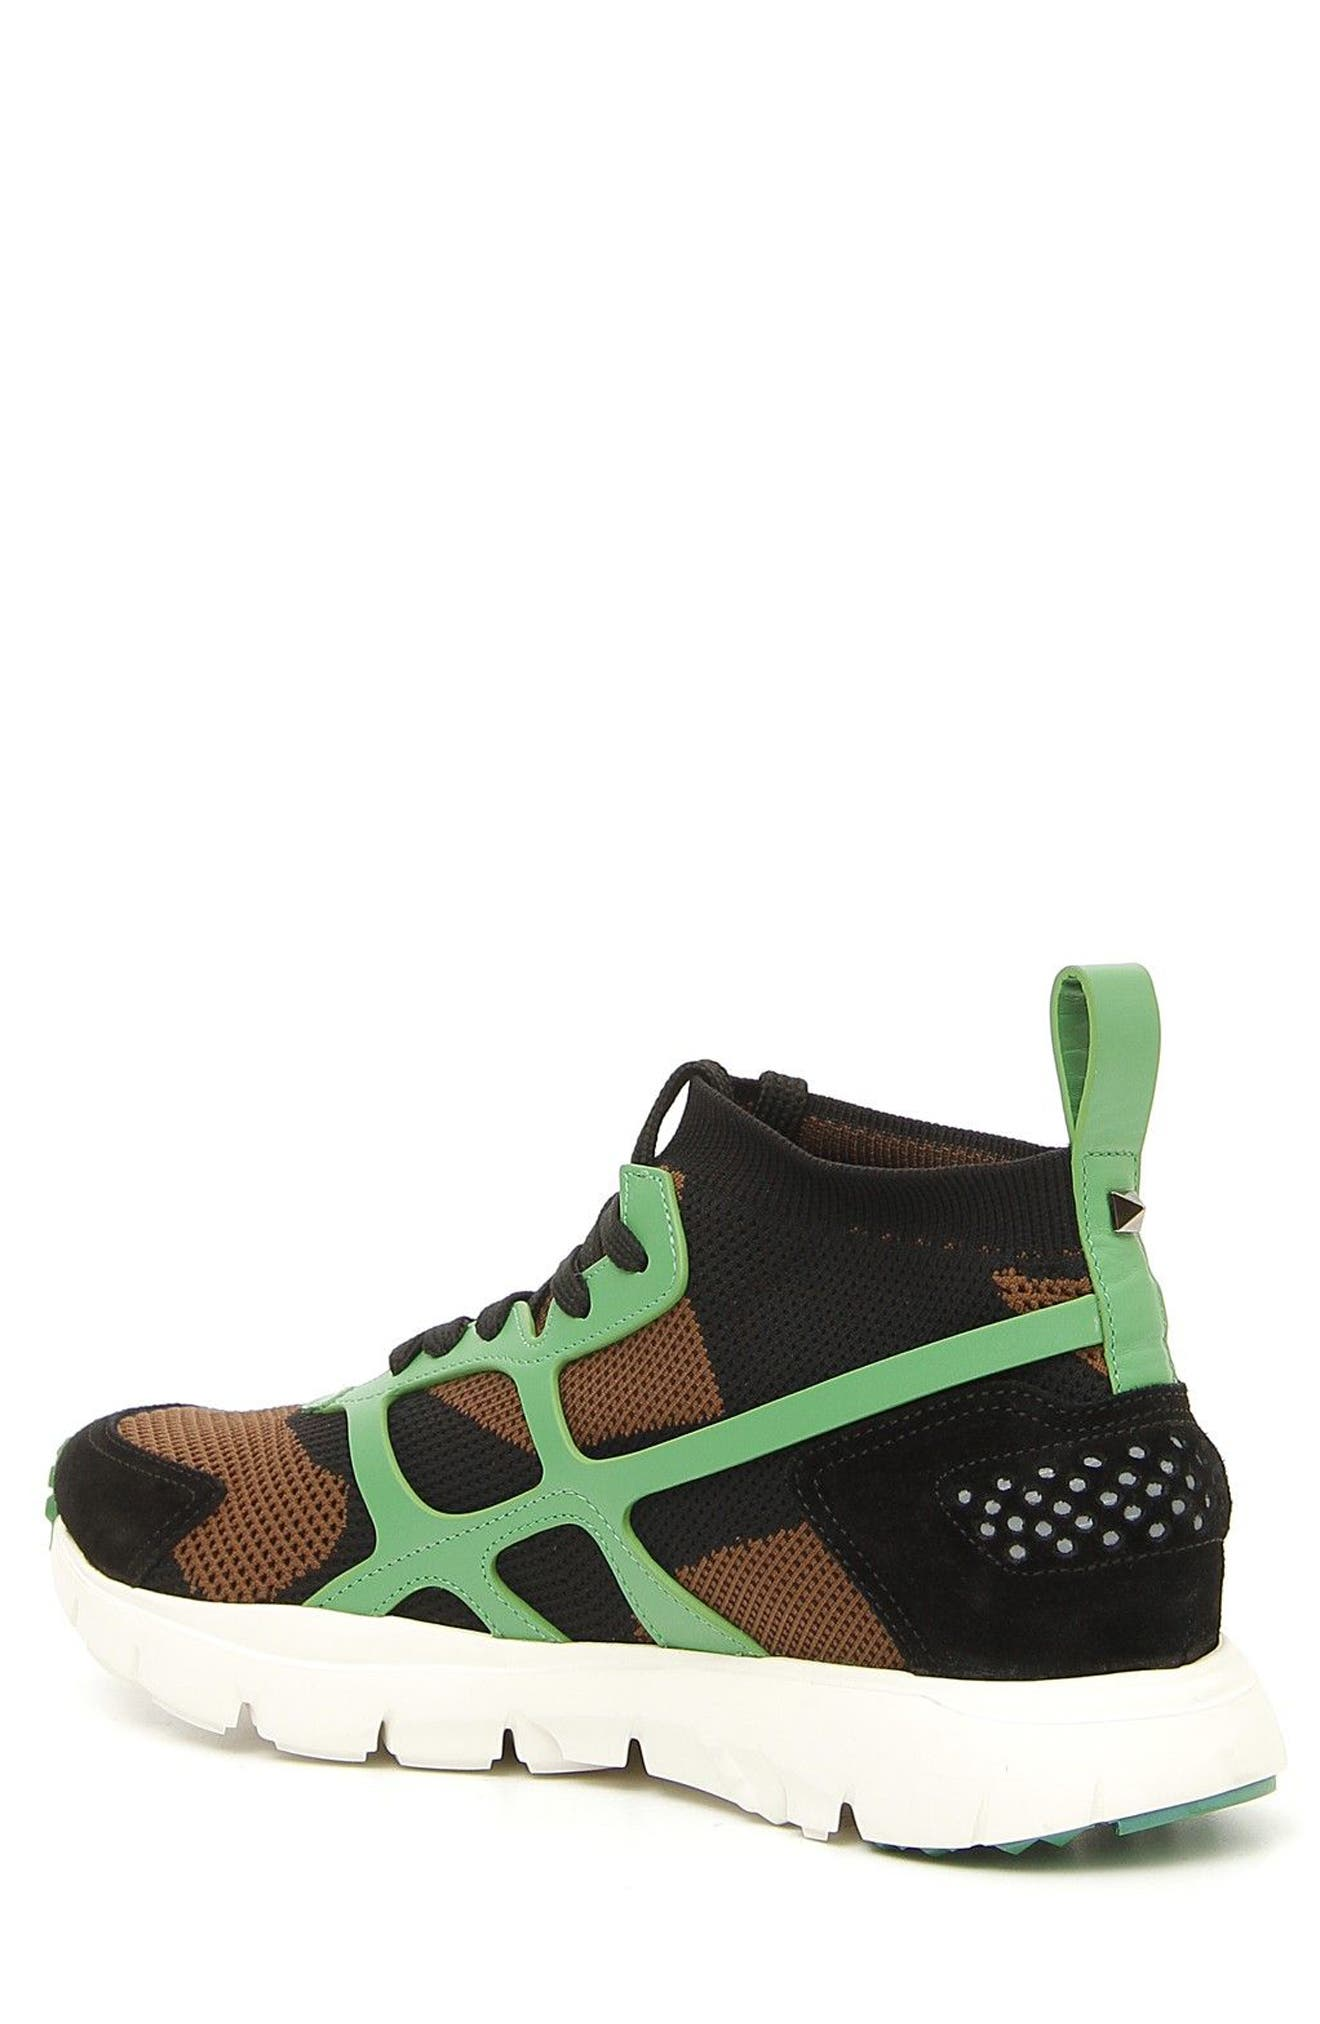 Sound High Sneaker,                             Alternate thumbnail 2, color,                             Army Green/ Nero/ Green